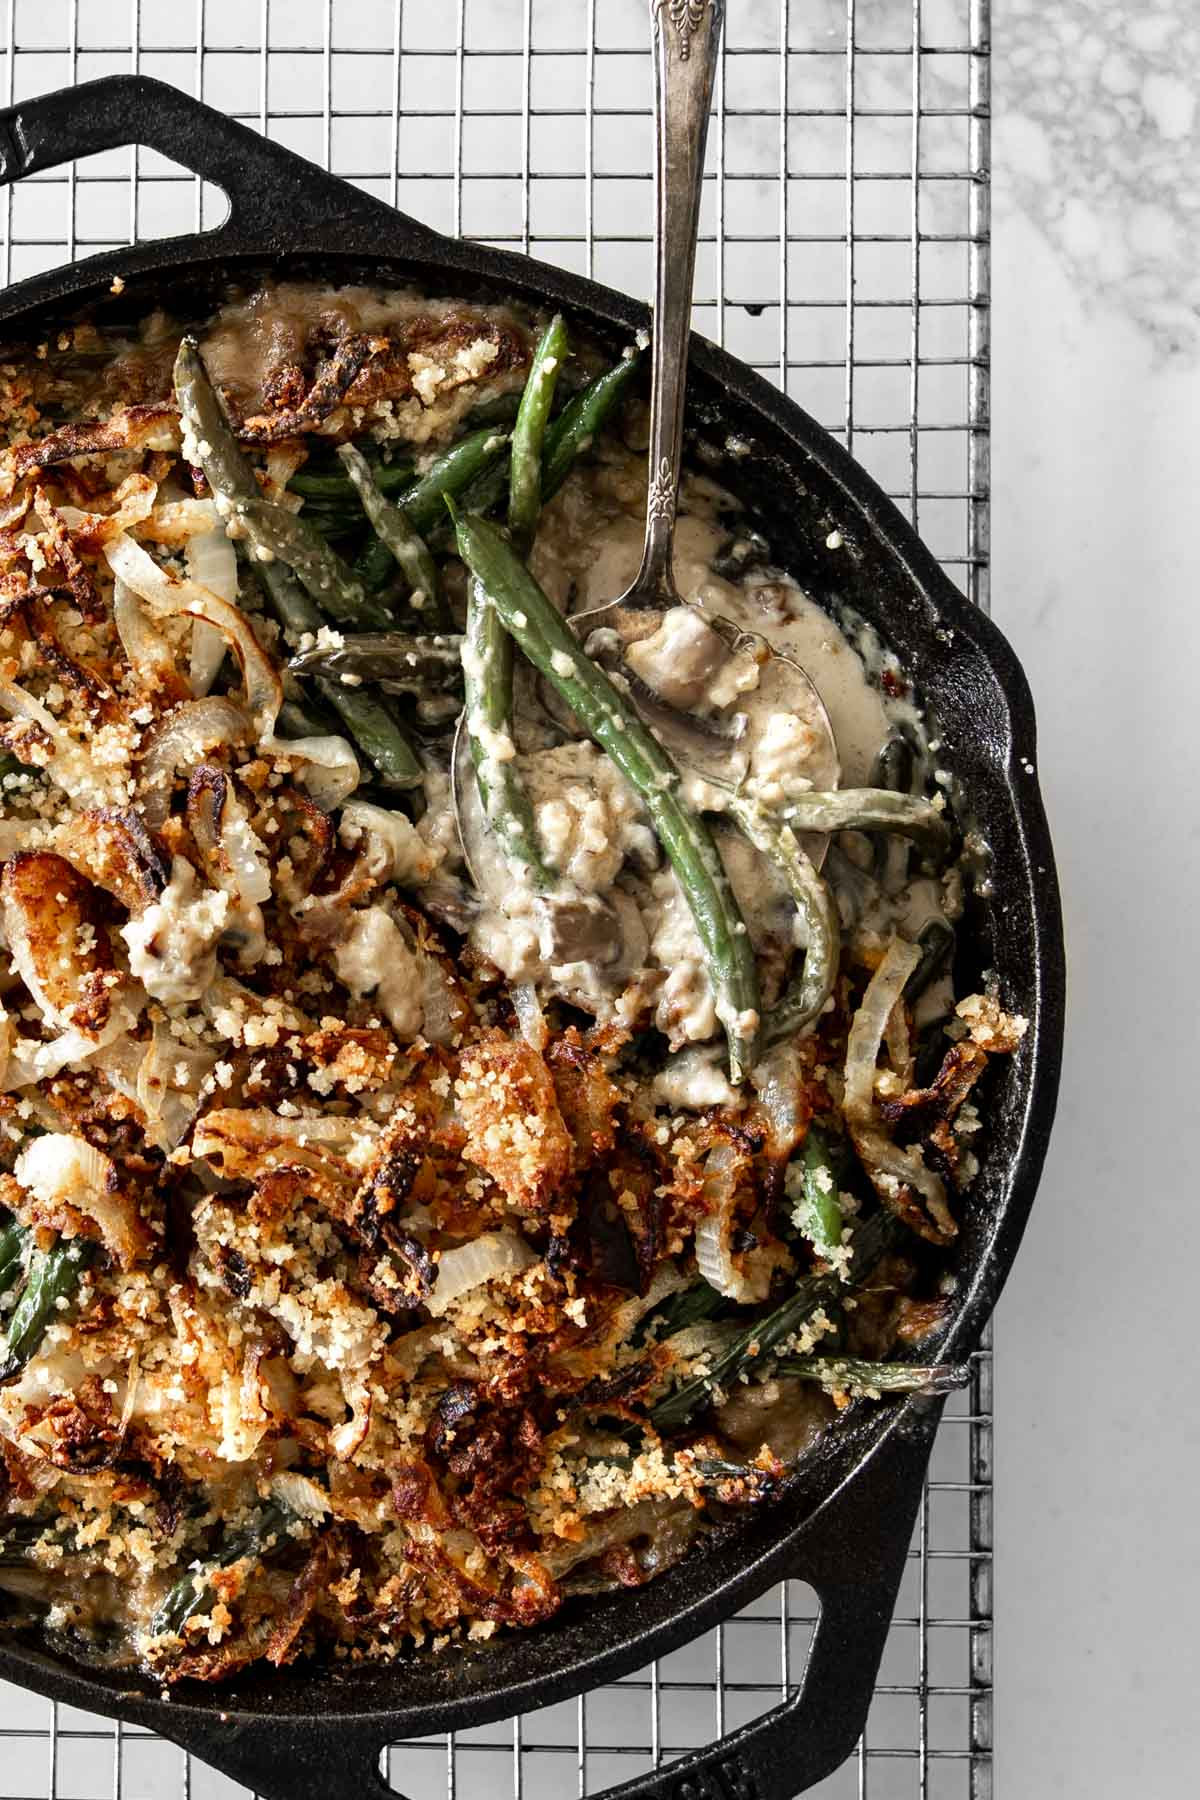 Close up of Green Bean Casserole in black skillet with antique spoon